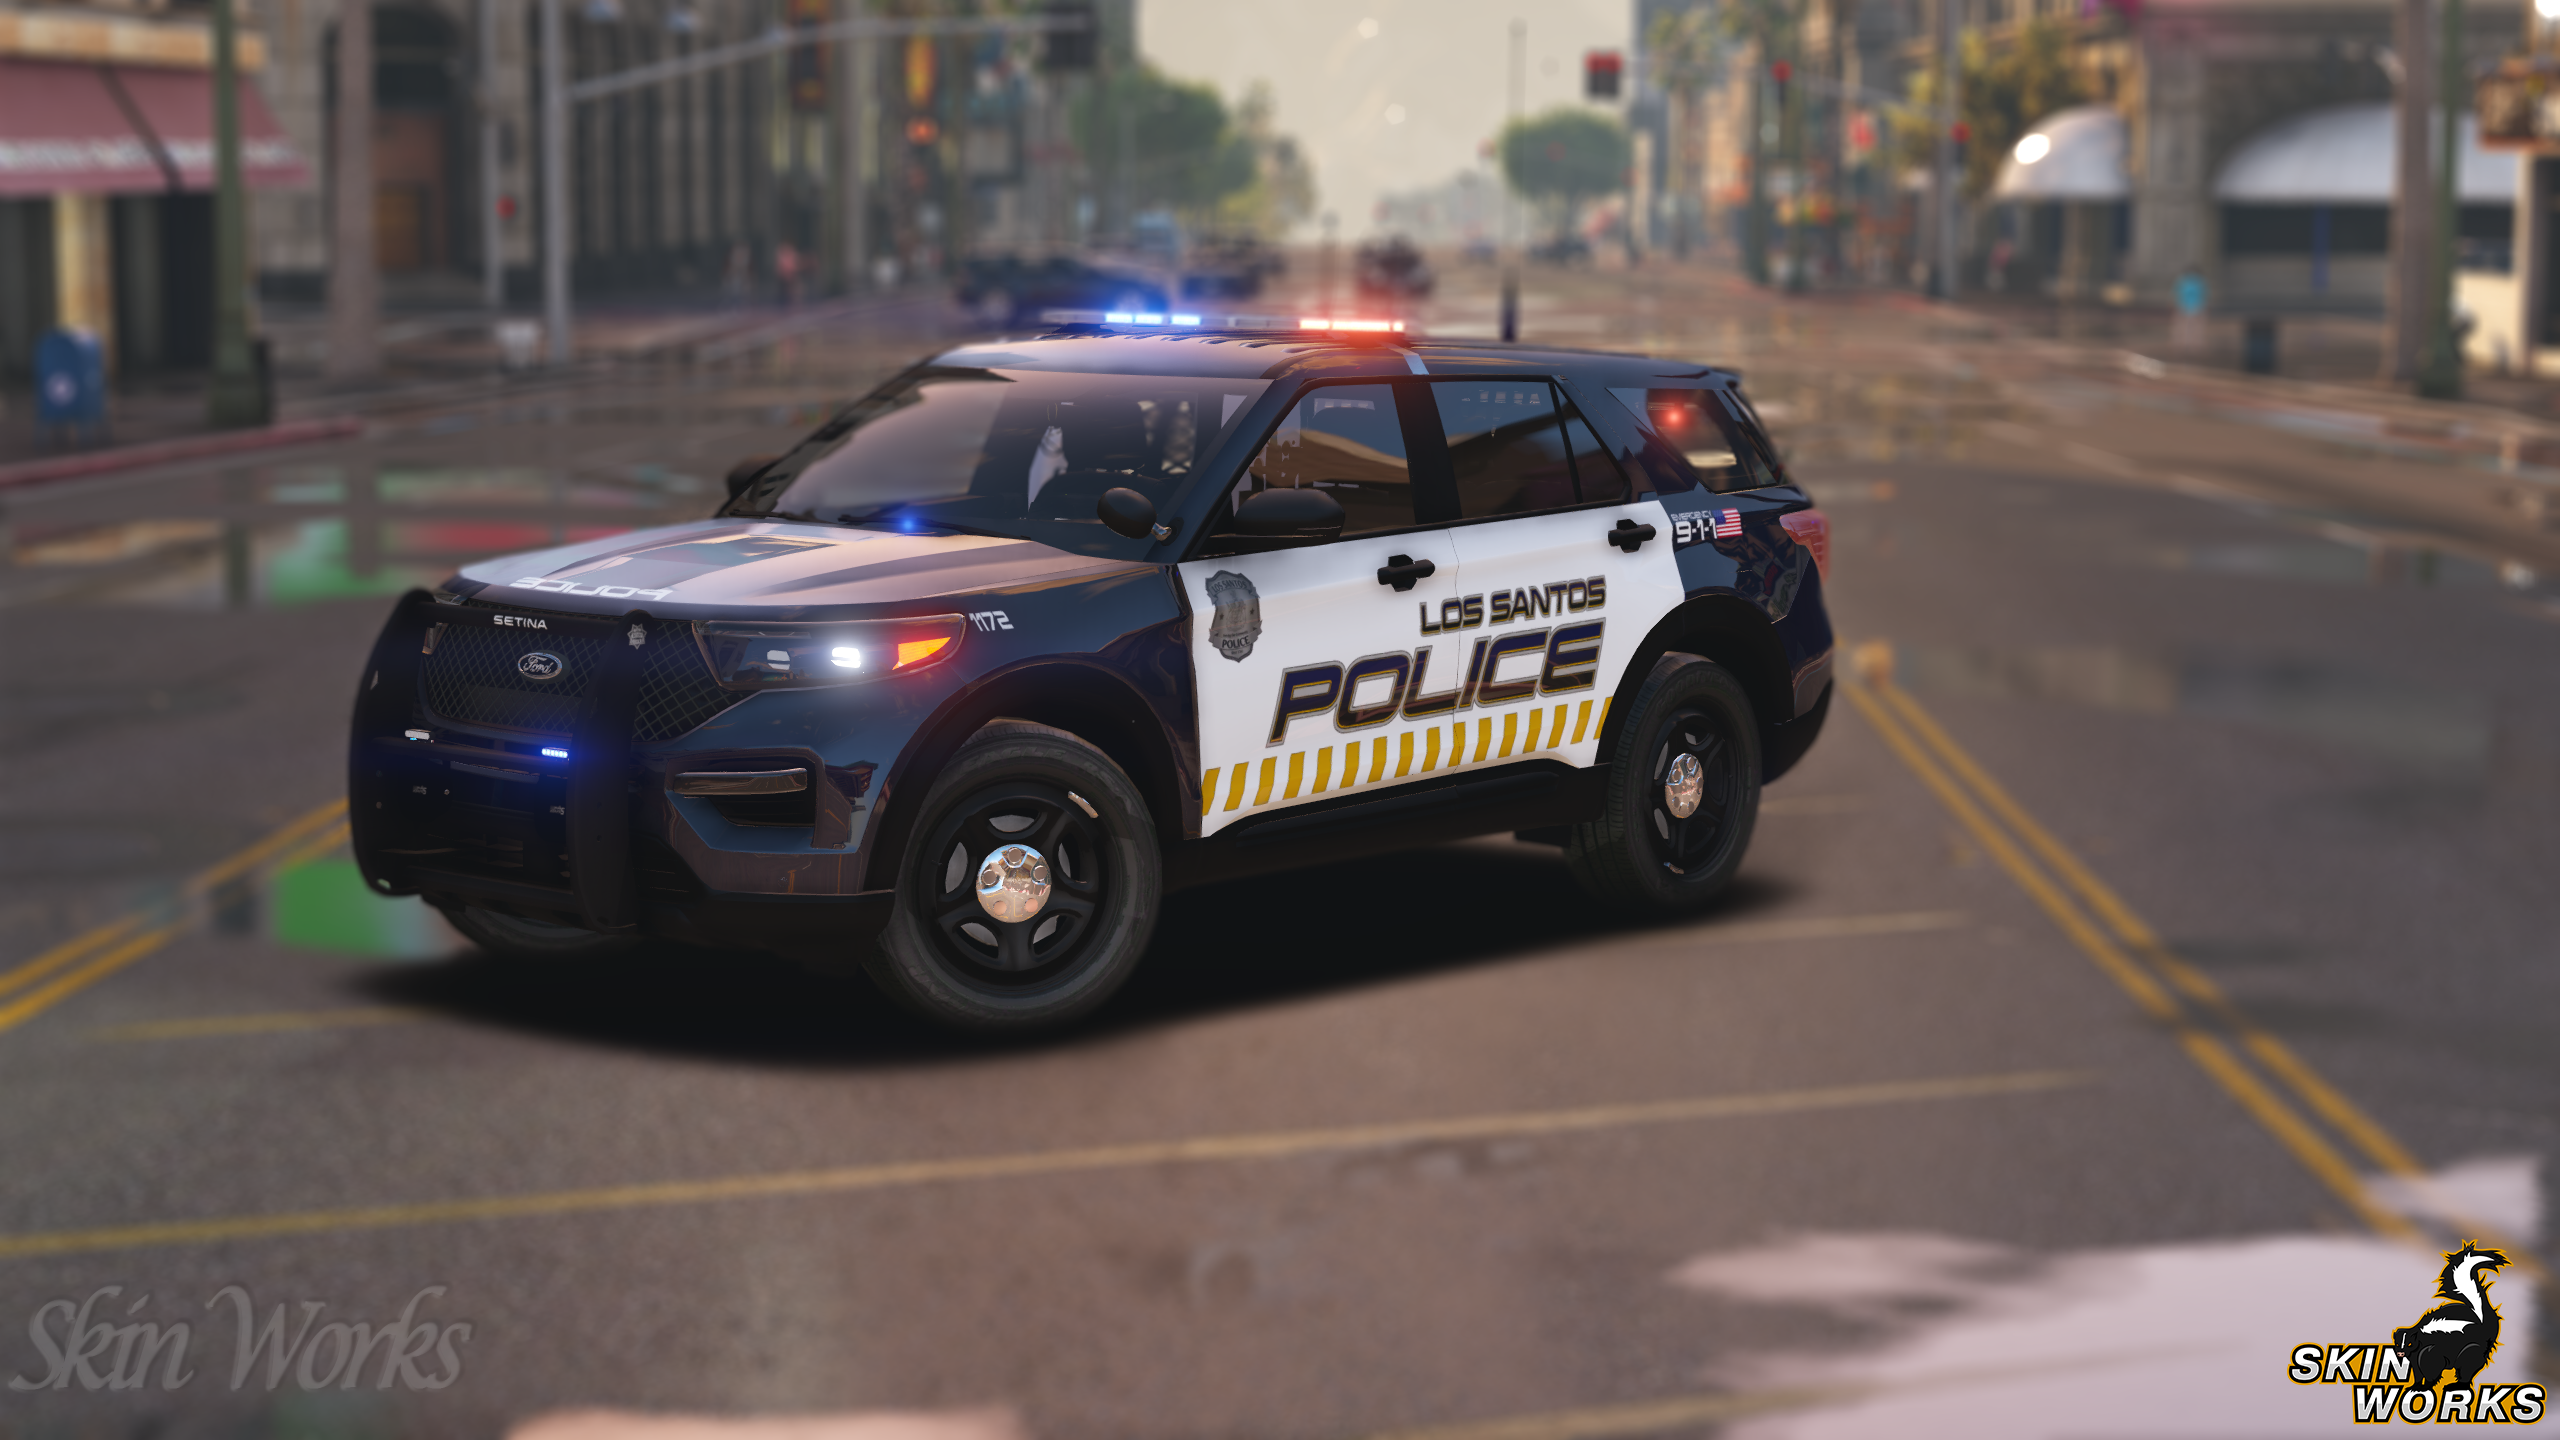 Think this Skin Makes any Vehicle Look Good